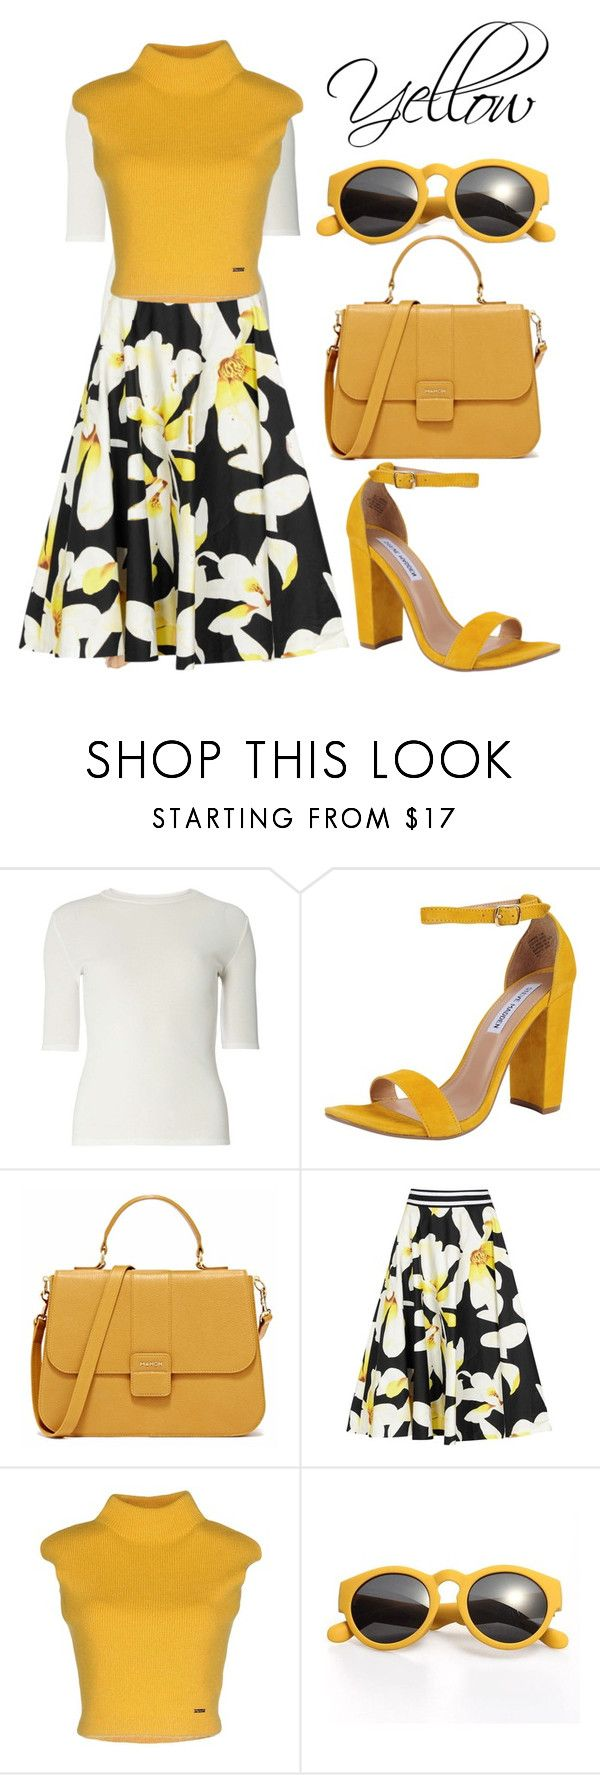 """""""Shades of You: Sunglass Hut Contest Entry"""" by sandrinah ❤ liked on Polyvore featuring Dorothy Perkins, Steve Madden, Alice + Olivia, Dsquared2 and shadesofyou"""